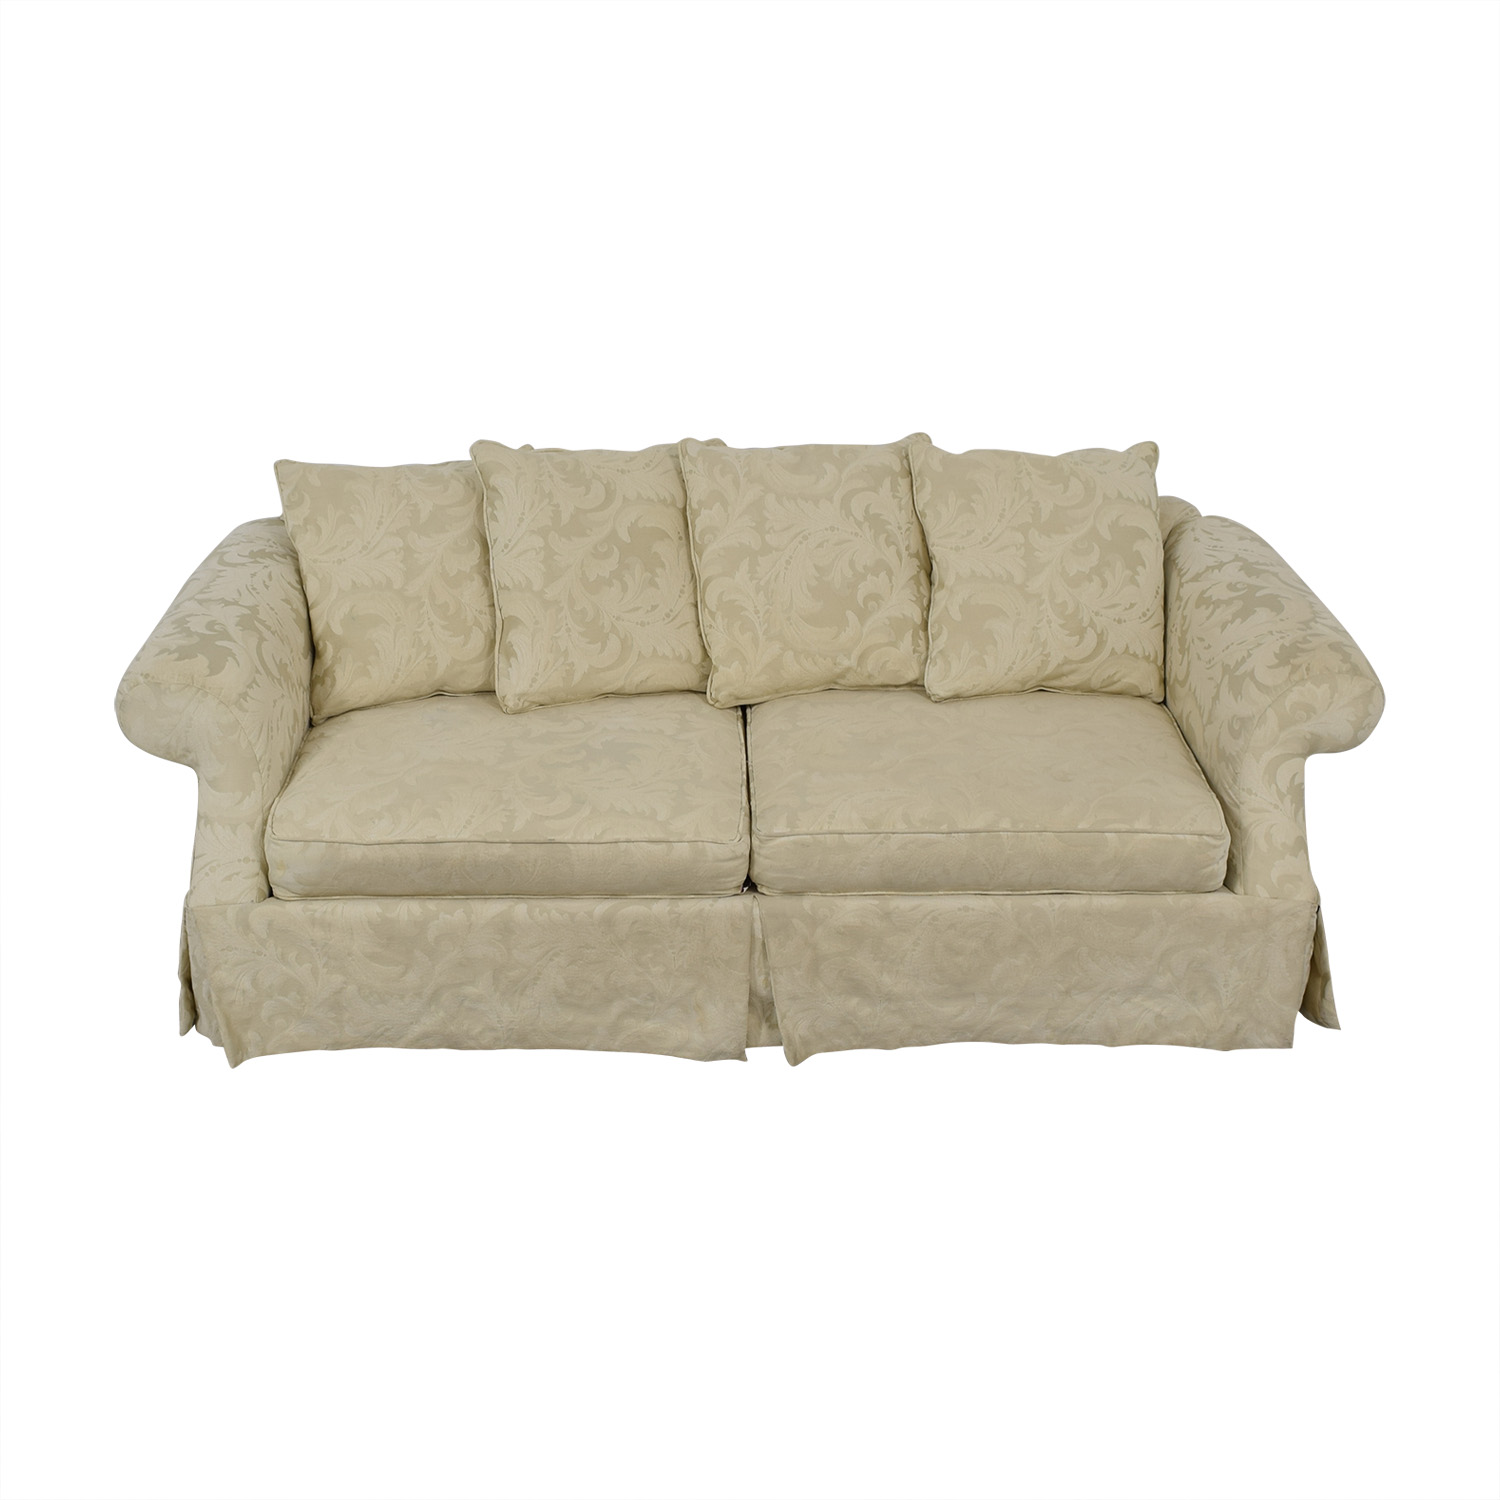 Rowe Furniture Rowe Furniture Roll Arm Sofa used